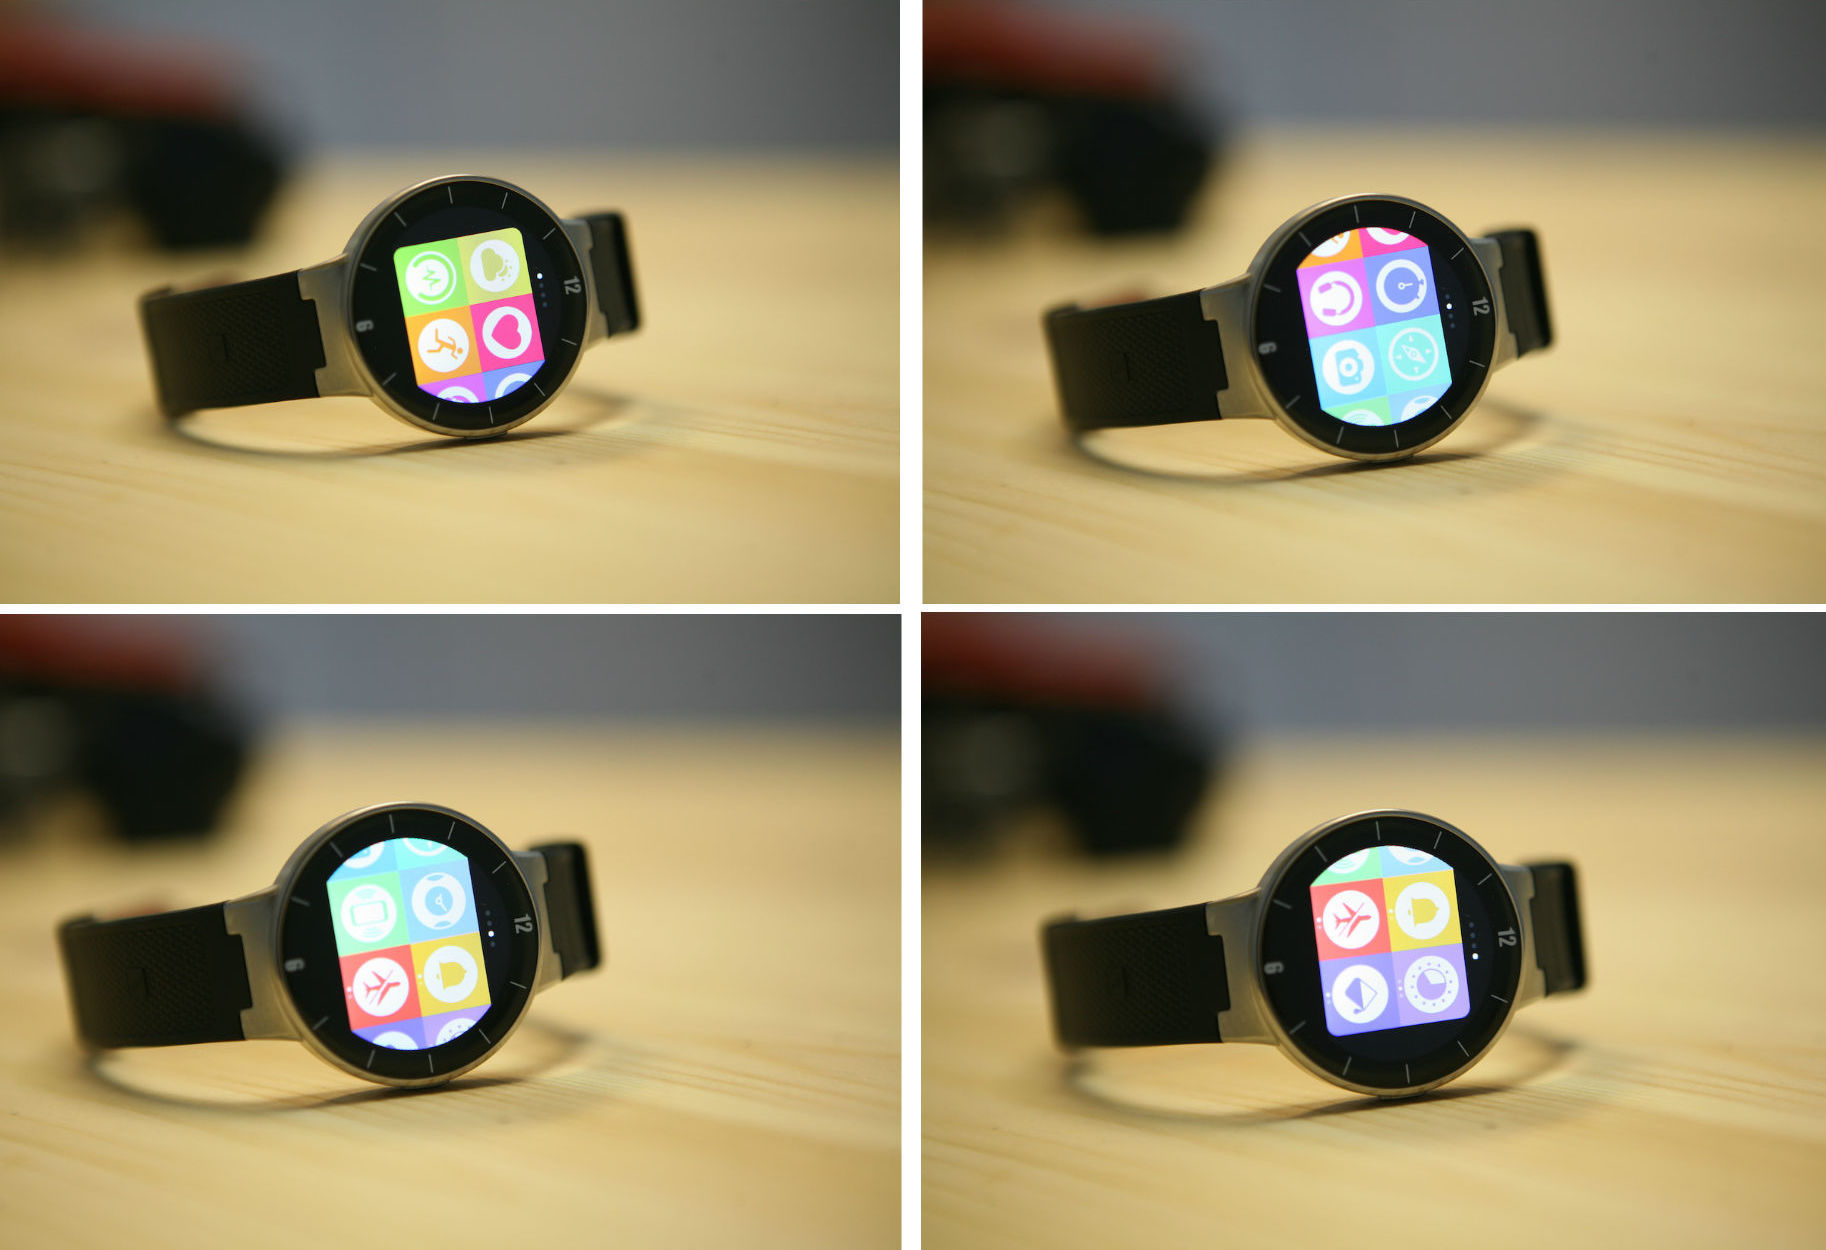 Alcatel One Touch — the Smart watch without Android Wear ...